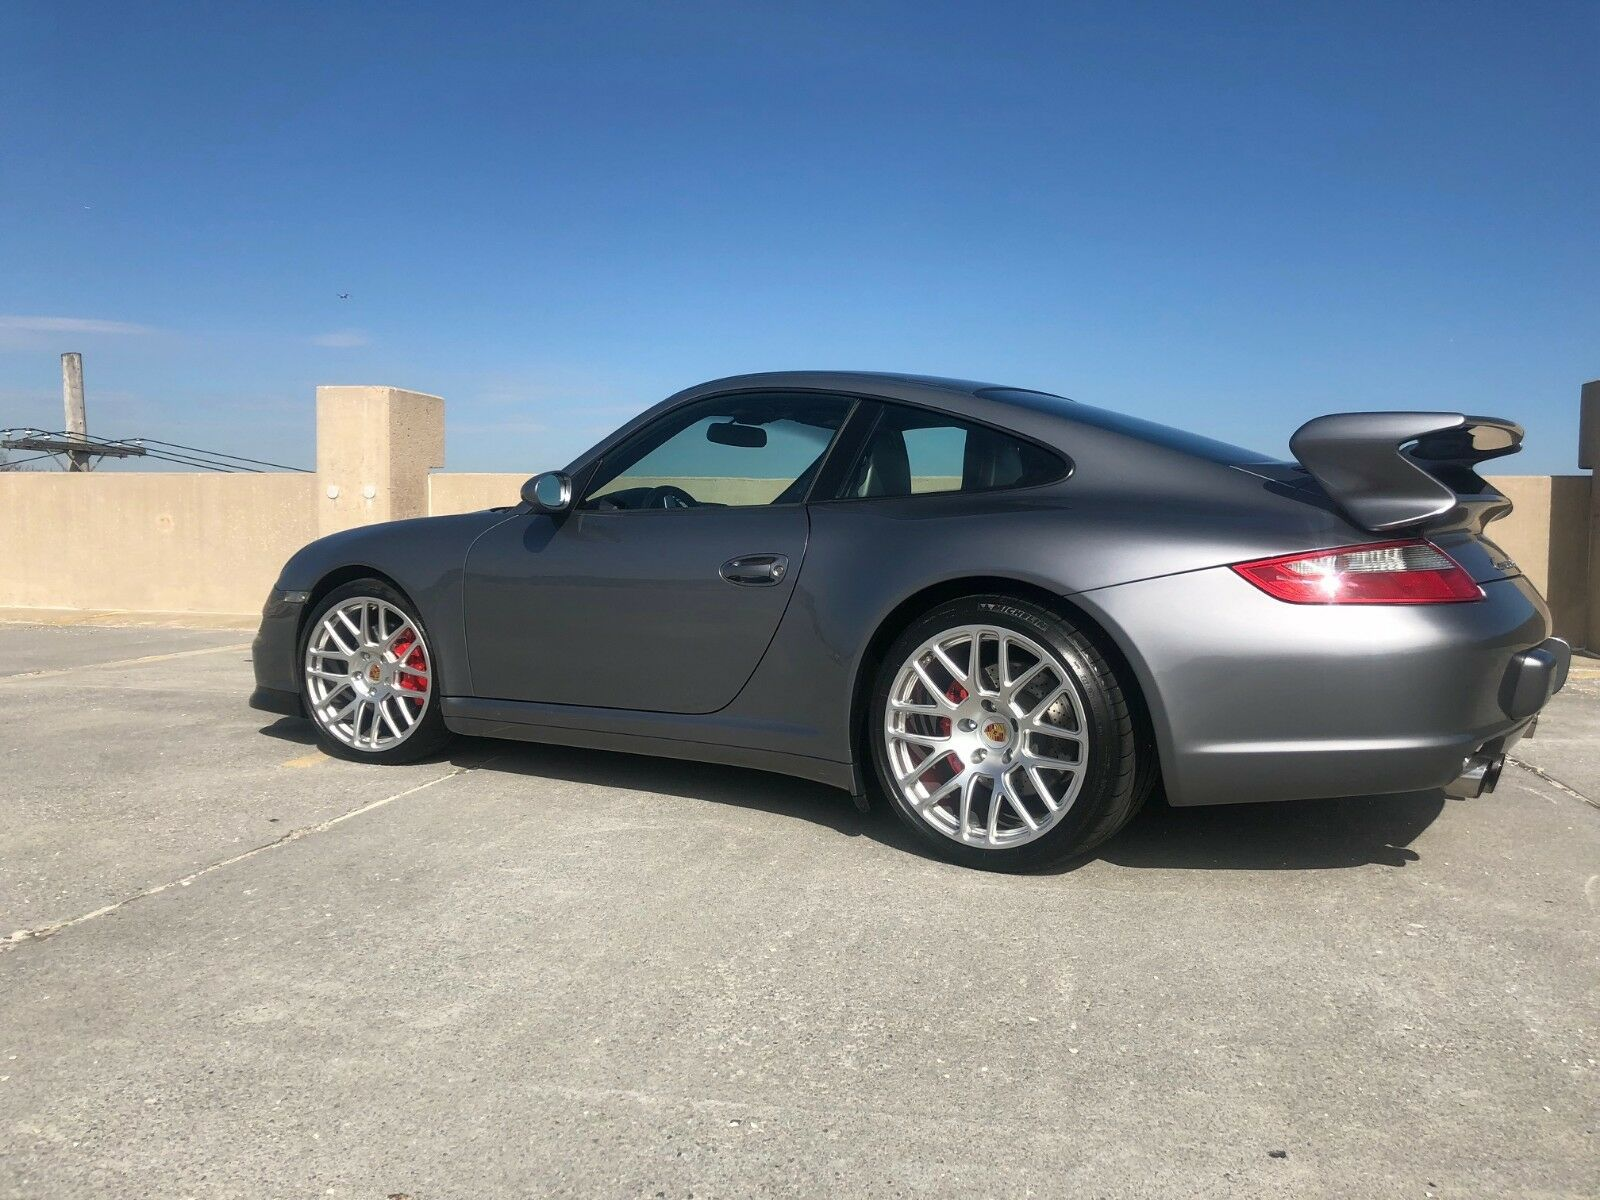 2006 Porsche 911 Carrera 4S with Factory Option GT3 Aero Kit